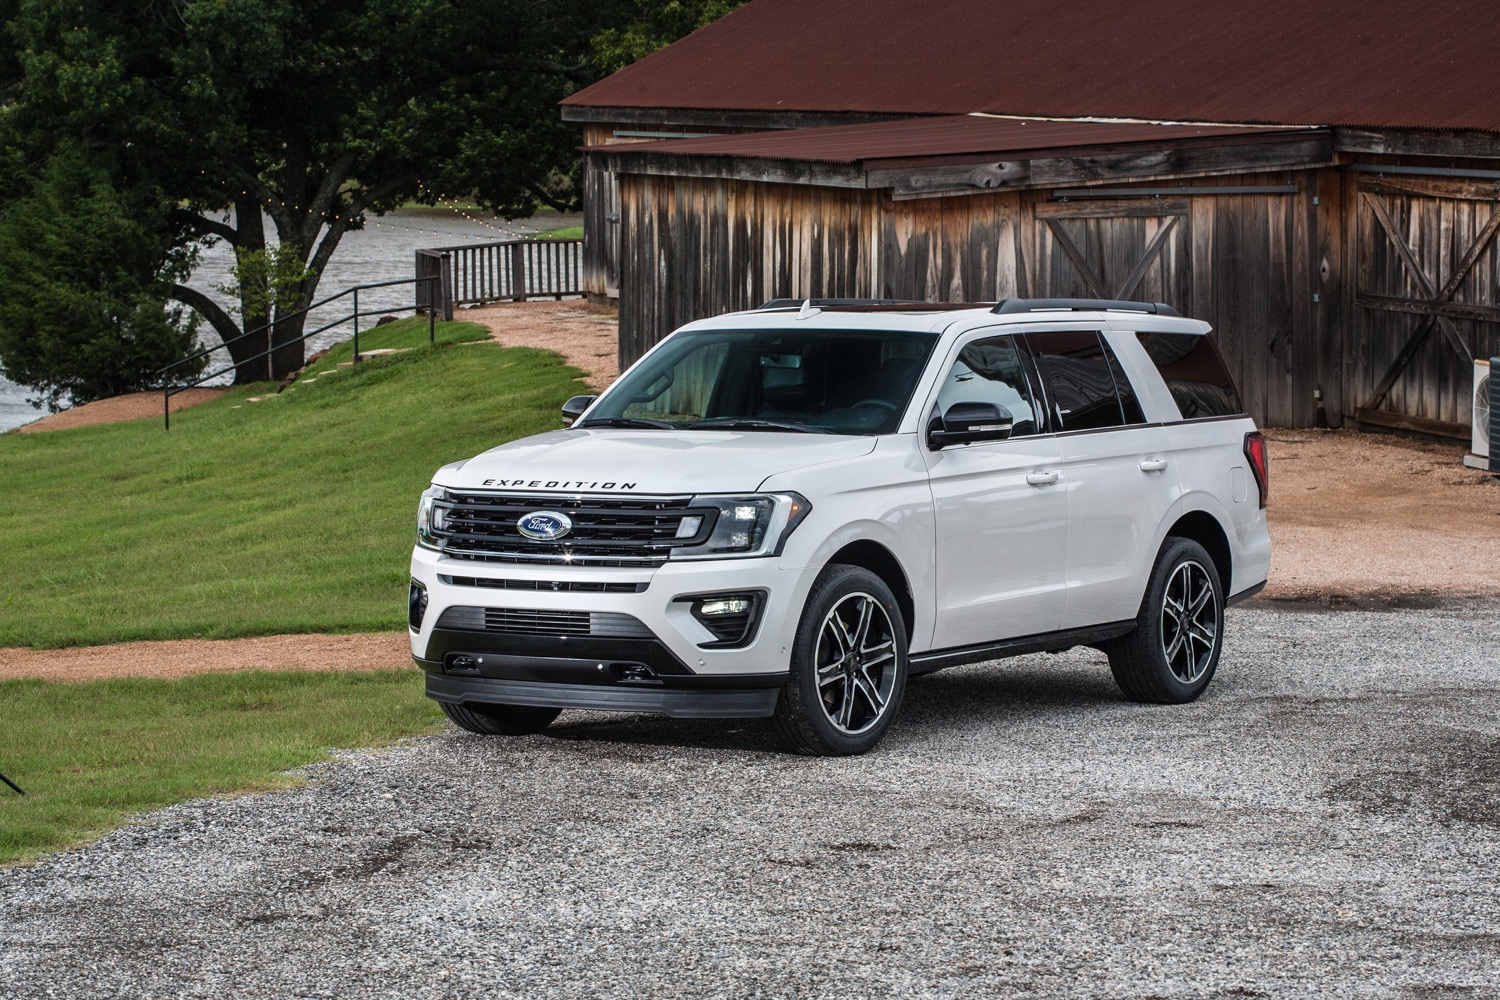 Ford Expedition Discount Takes $4,250 Off Full-Size Suv In